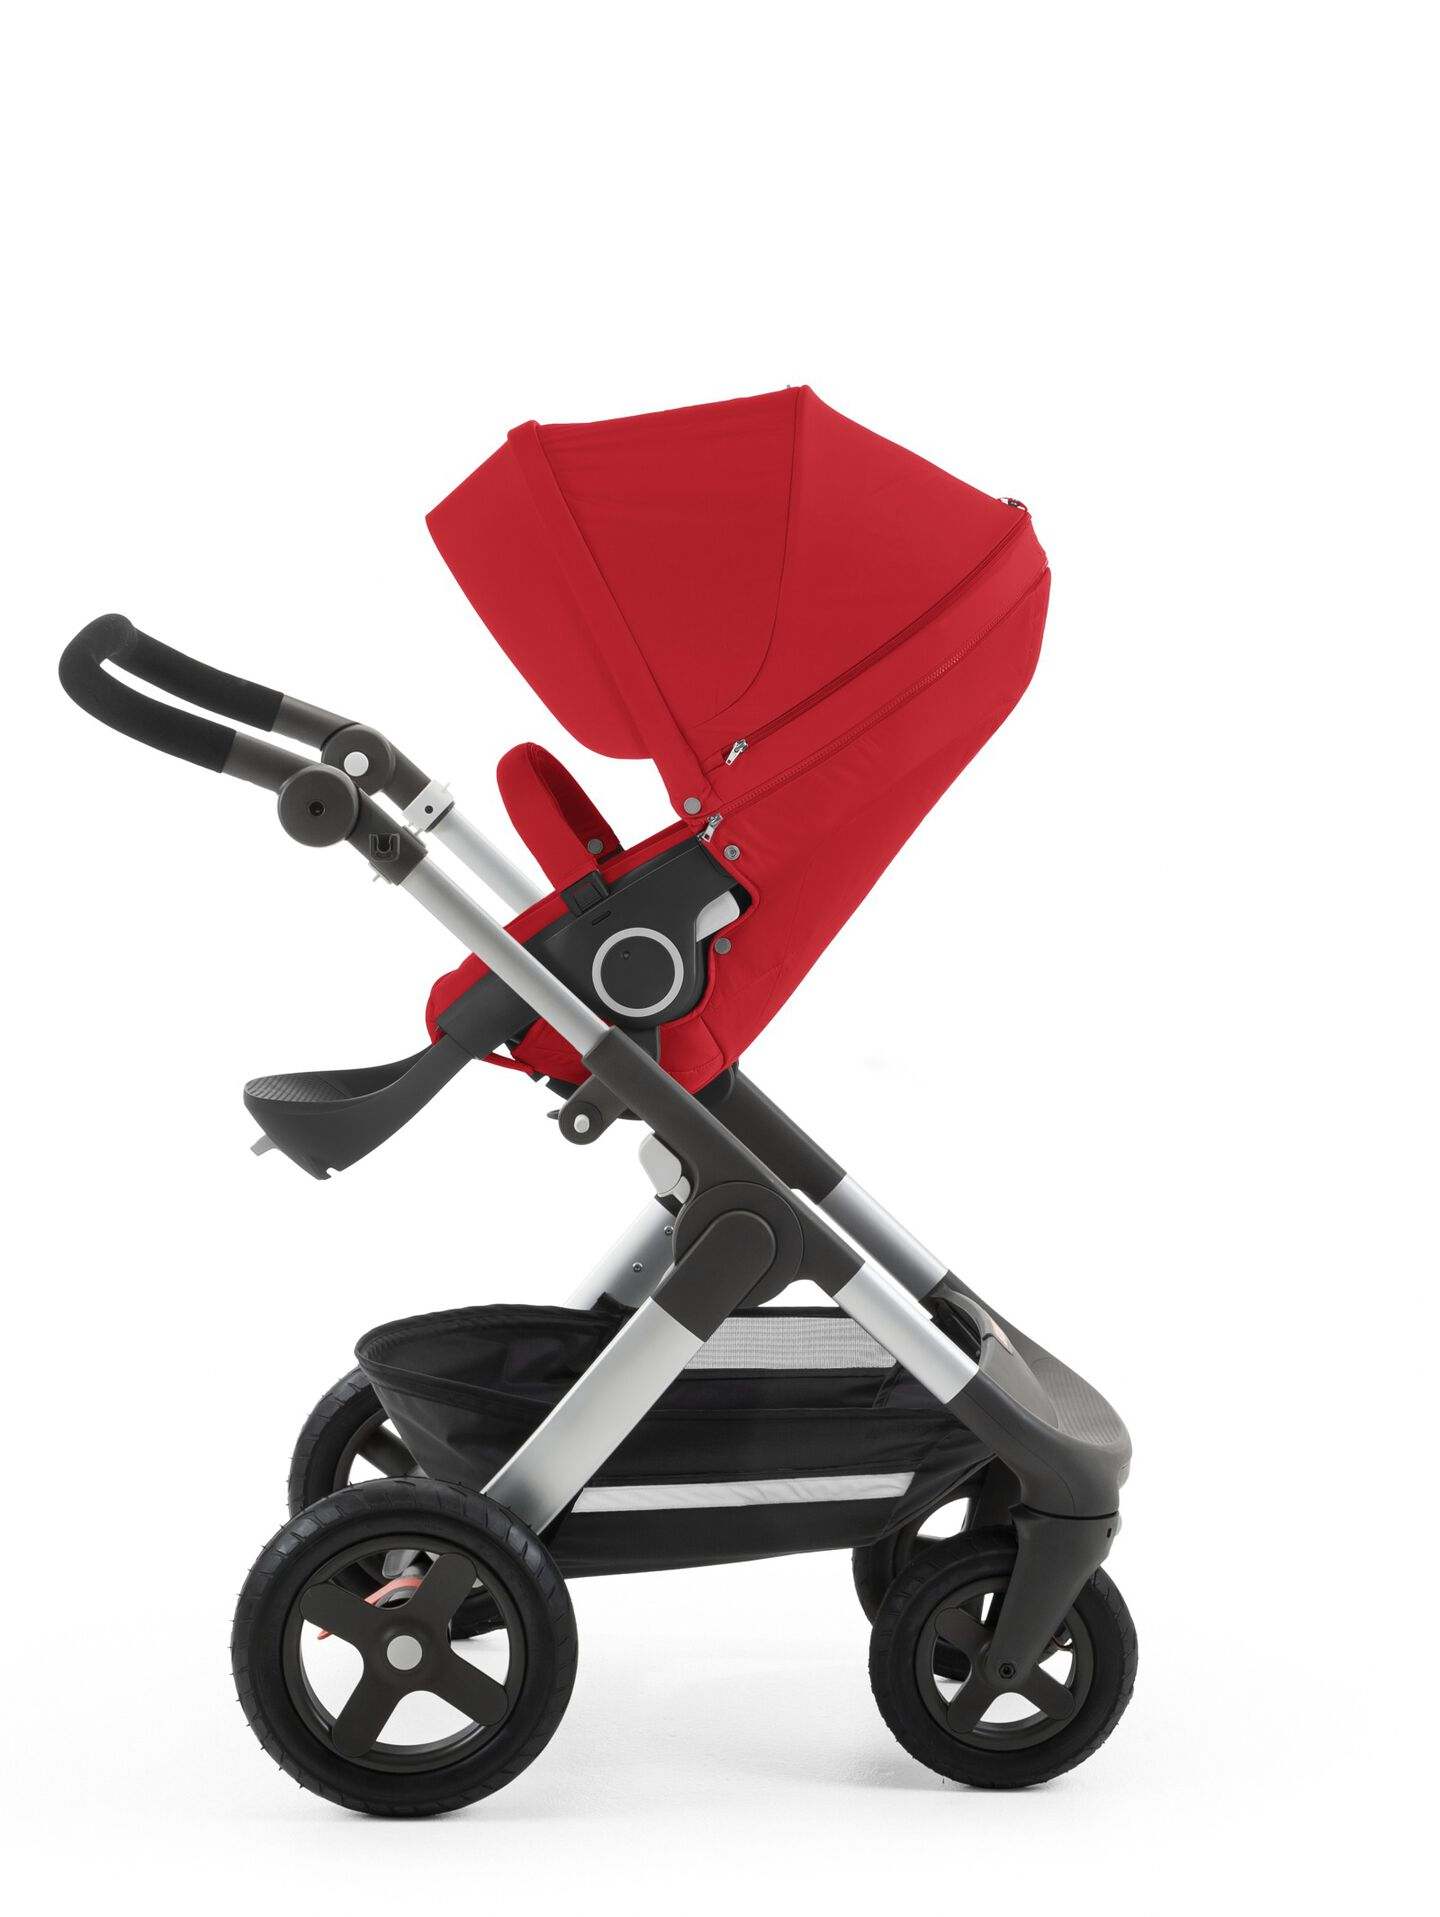 Stokke® Trailz™ with Stokke® Stroller Seat Red.